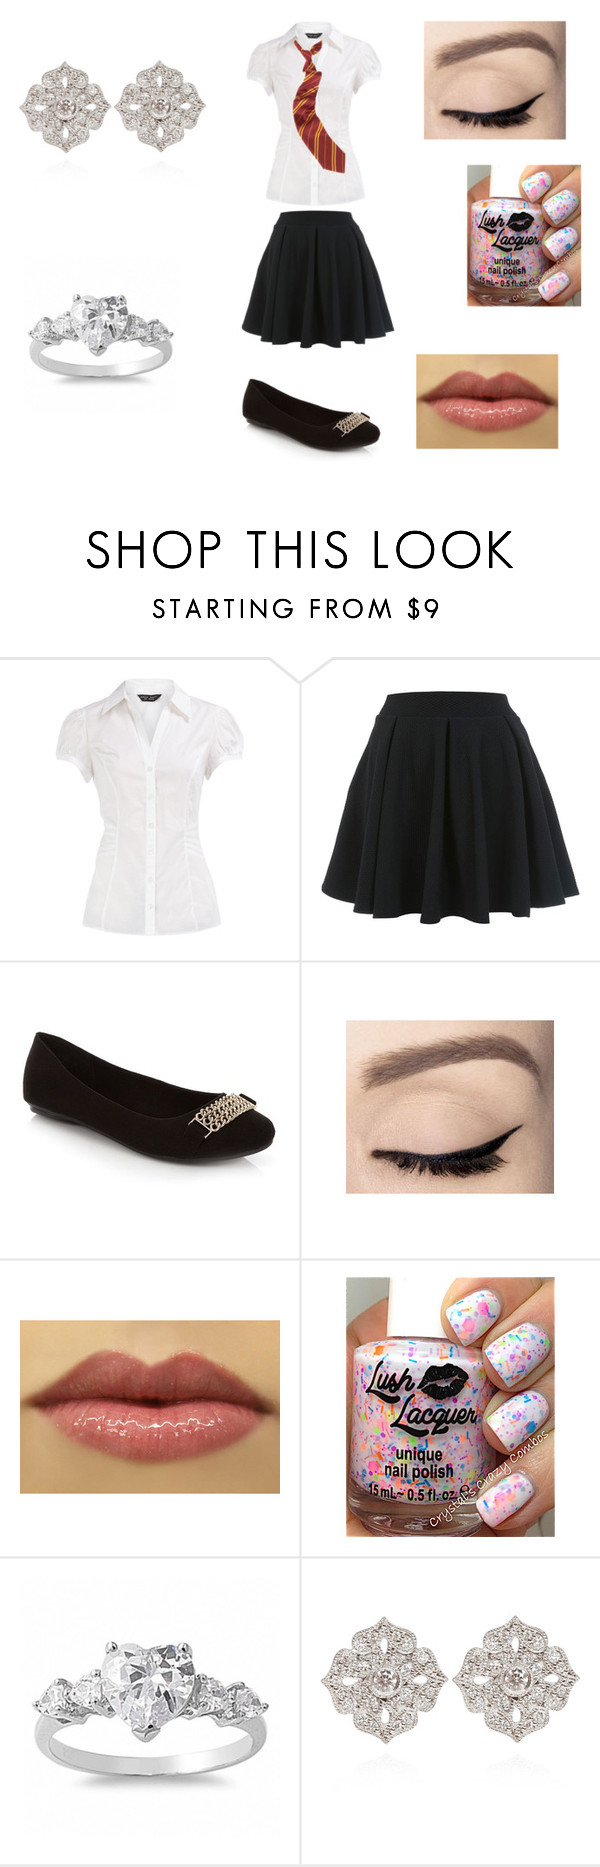 """back to hogwarts 2"" by georgia-354 ❤ liked on Polyvore featuring Dorothy Perkins, Miss Selfridge, Fantasy Jewelry Box and STONE"